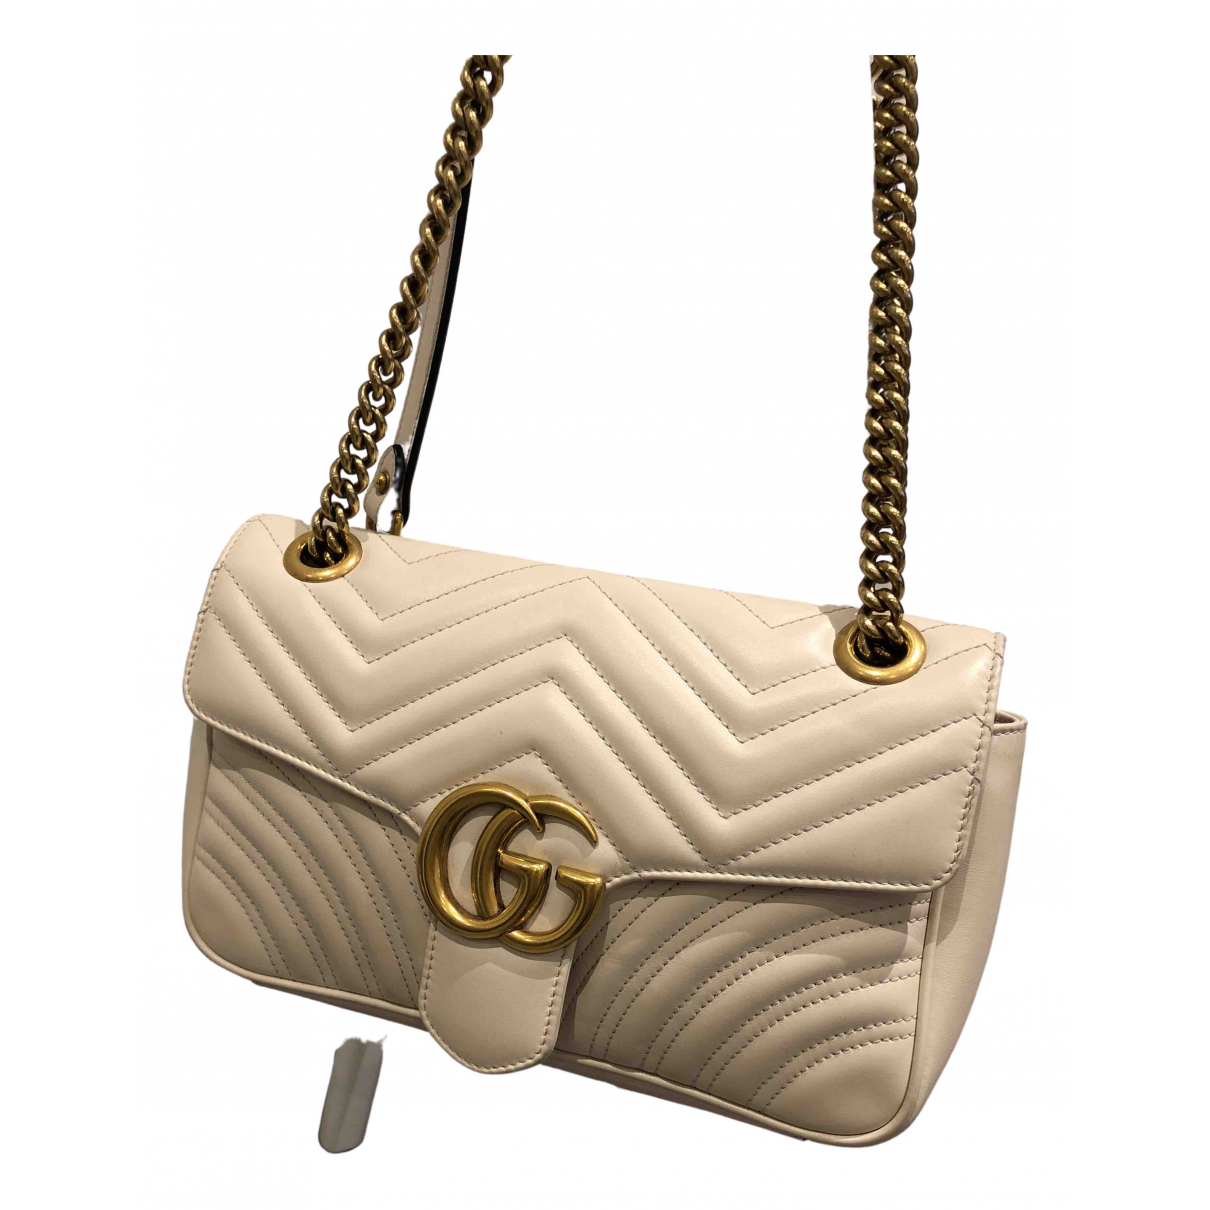 Gucci Marmont White Leather handbag for Women N